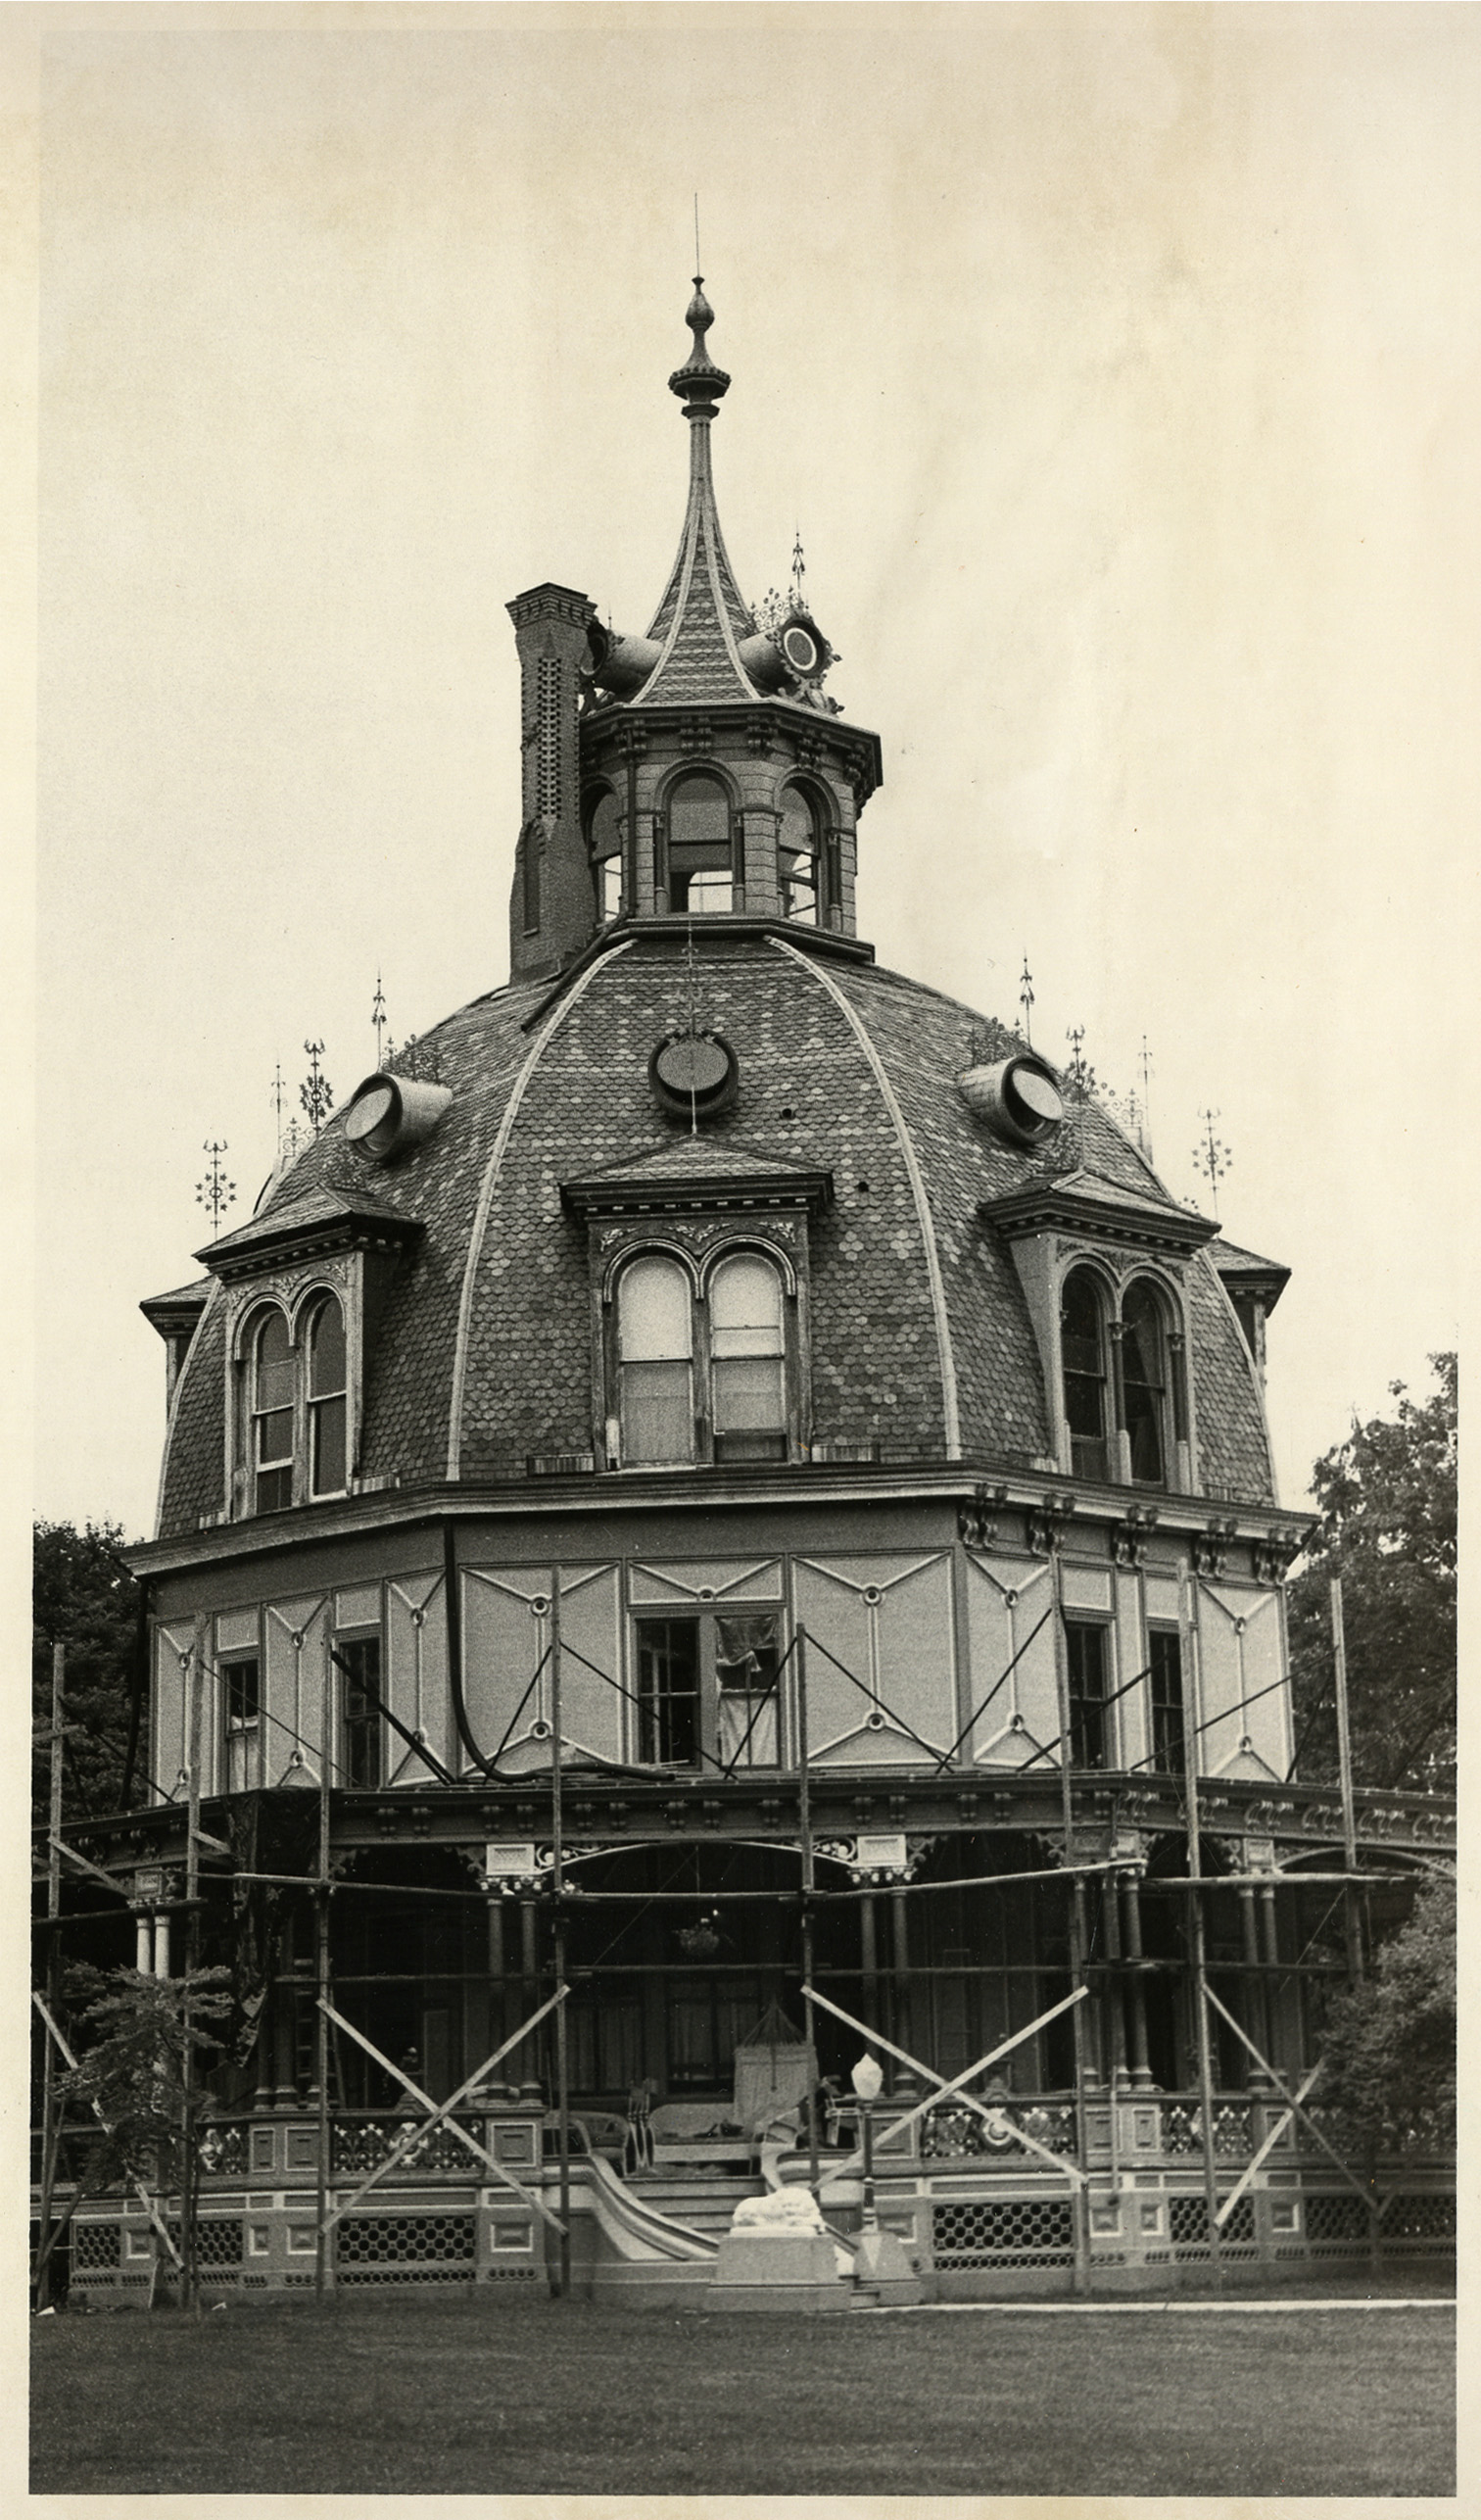 The Armour-Stiner Octagon House